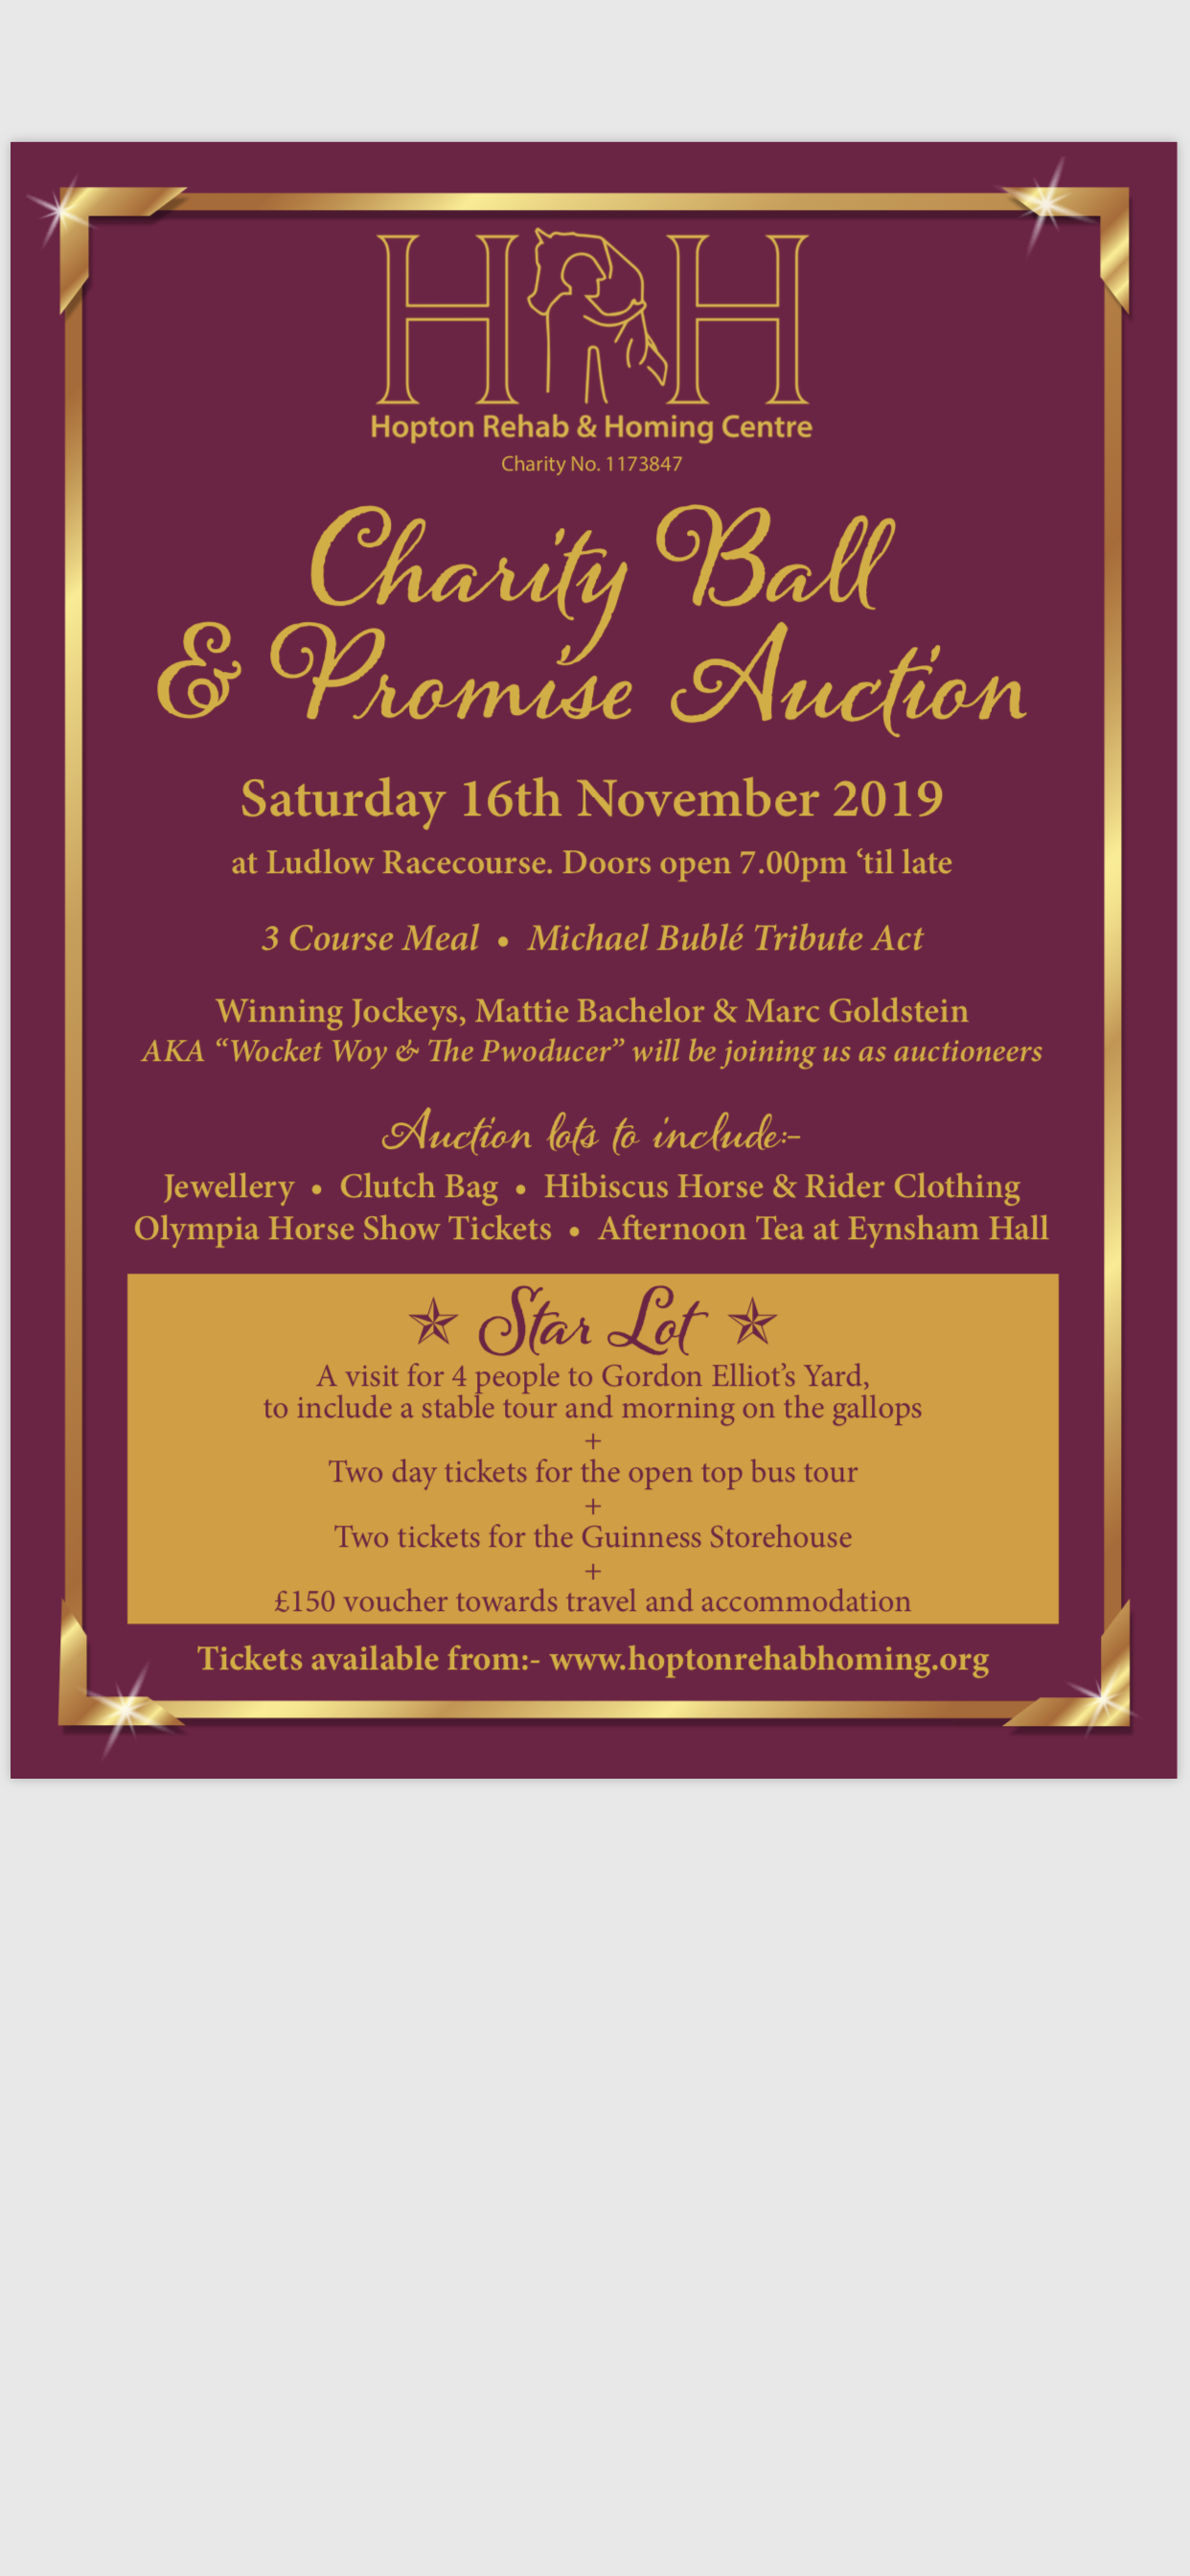 Hopton Rehab & Homing Centre Annual Charity Ball